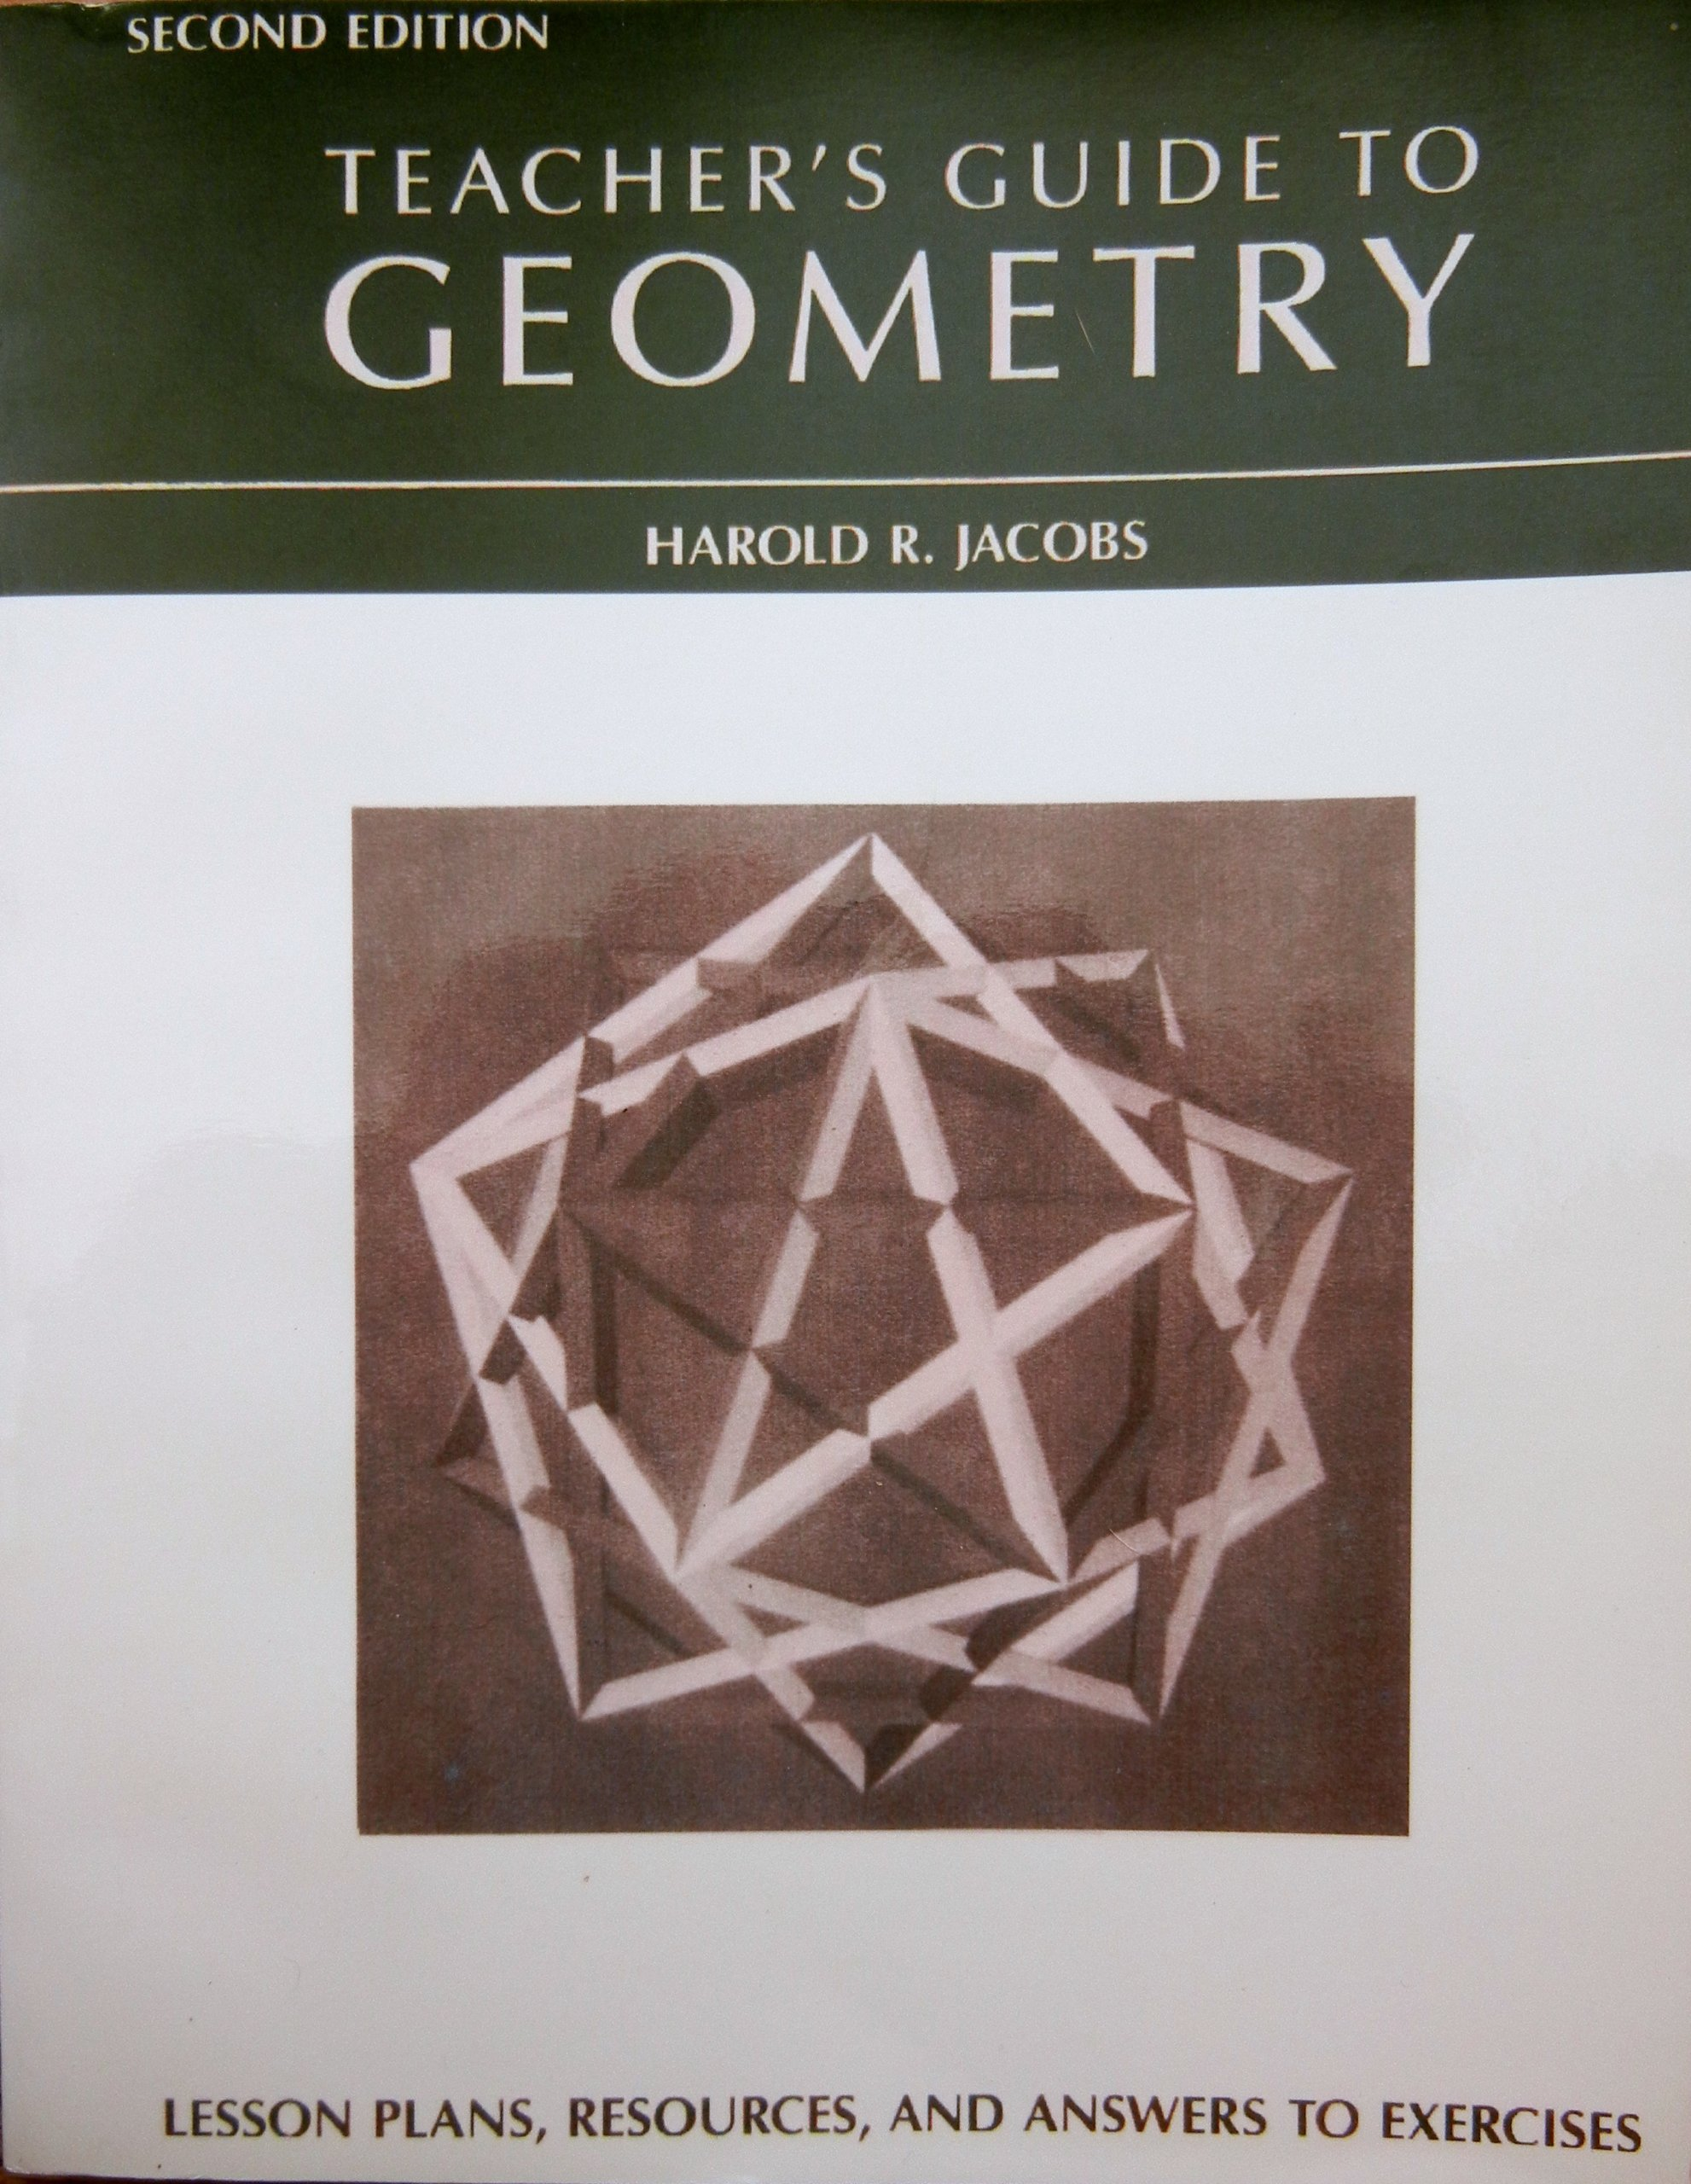 Teacher's Guide to Geometry: Harold R. Jacobs: 9780716717485: Amazon.com:  Books